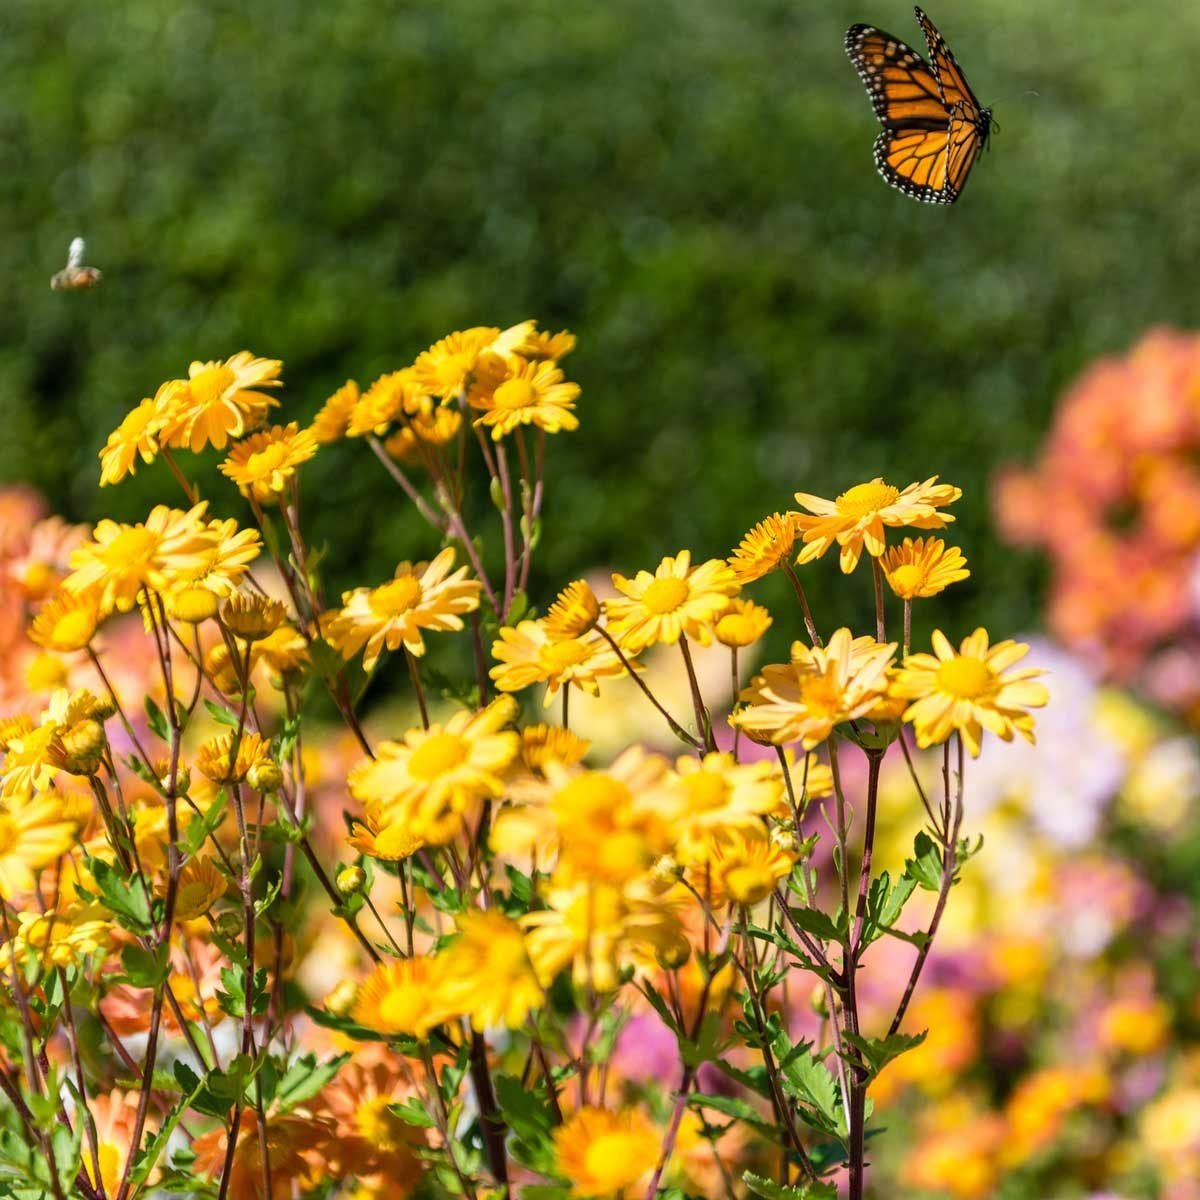 Pollinator-Friendly Lawn Care To Get Your Yard Buzzing